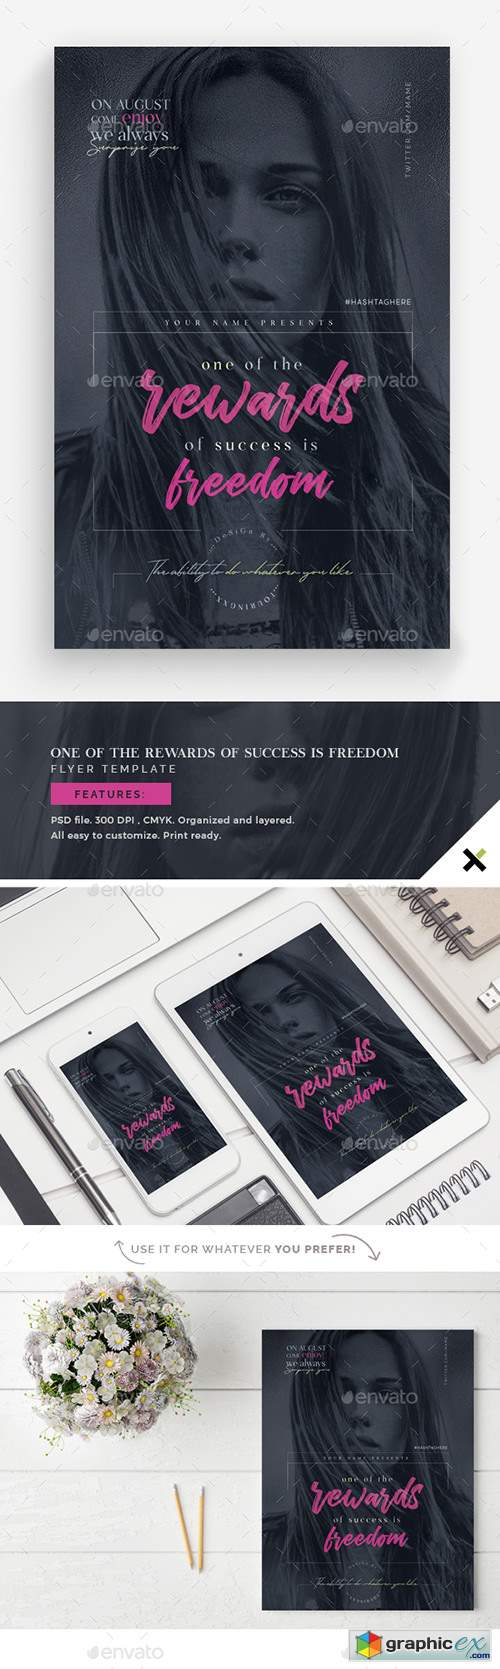 On Of the Rewards of Success is Freedom Flyer Template